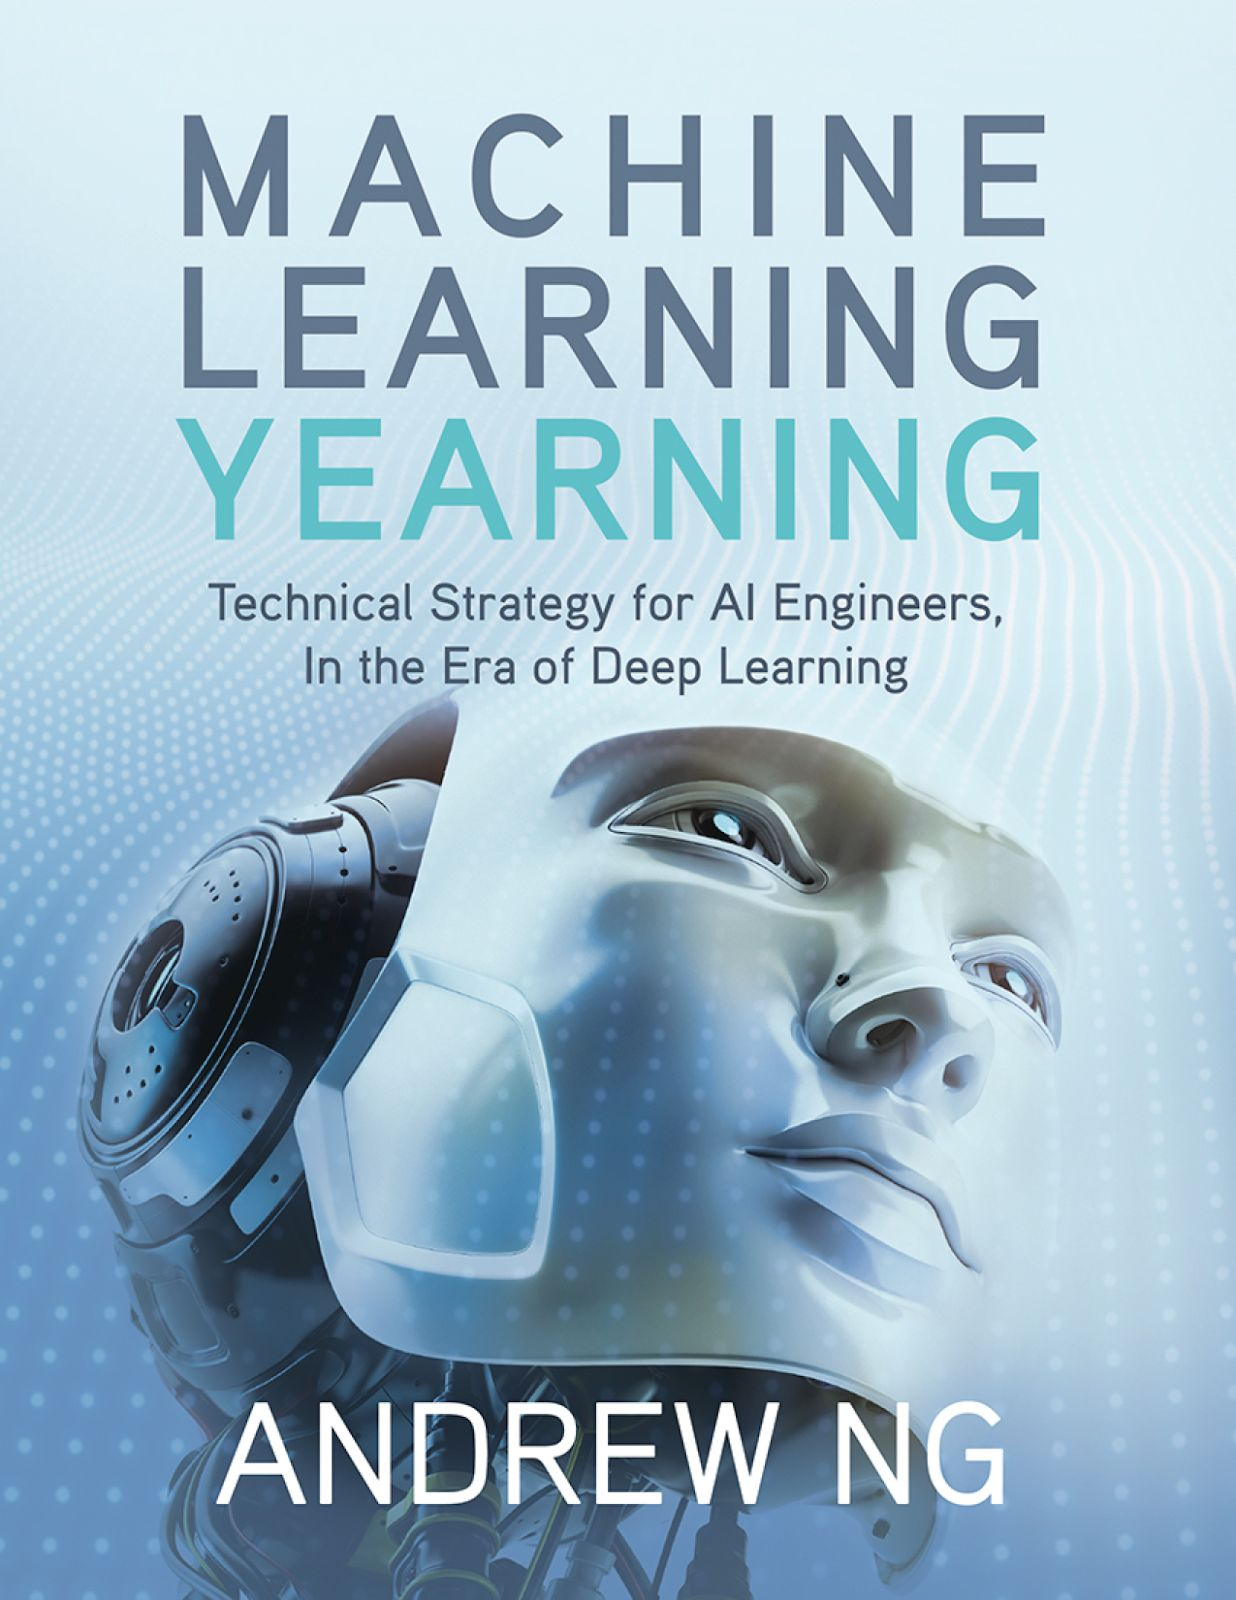 "Translation of the book by Andrew Eun ""The Passion for Machine Learning"" Chapters 1 - 14     Some time ago, in my Facebook feed, a link to Andrew Ng's book ""Machine Learning Yearning"" popped up, which can be translated as ""Passion for machine learning"" or ""Thirst for machine learning.""               People who are interested in computer training or working in this field should not be represented by Andrew. For the uninitiated, it is enough to say that he is a world-magnitude star in the field of artificial intelligence. Scientist, engineer, entrepreneur, one of the founders of  Coursera  . The author of an excellent course on  introduction to machine learning  and the courses that make up the specialization ""Deep Learning"" (     Some time ago, in my Facebook feed, a link to Andrew Ng's book ""Machine Learning Yearning"" popped up, which can be translated as ""Passion for machine learning"" or ""Thirst for machine learning.""               People who are interested in computer training or working in this field should not be represented by Andrew. For the uninitiated, it is enough to say that he is a world-magnitude star in the field of artificial intelligence. Scientist, engineer, entrepreneur, one of the founders of  Coursera  . The author of an excellent course on  introduction to machine learning  and the courses that make up the specialization ""Deep Learning"" ("